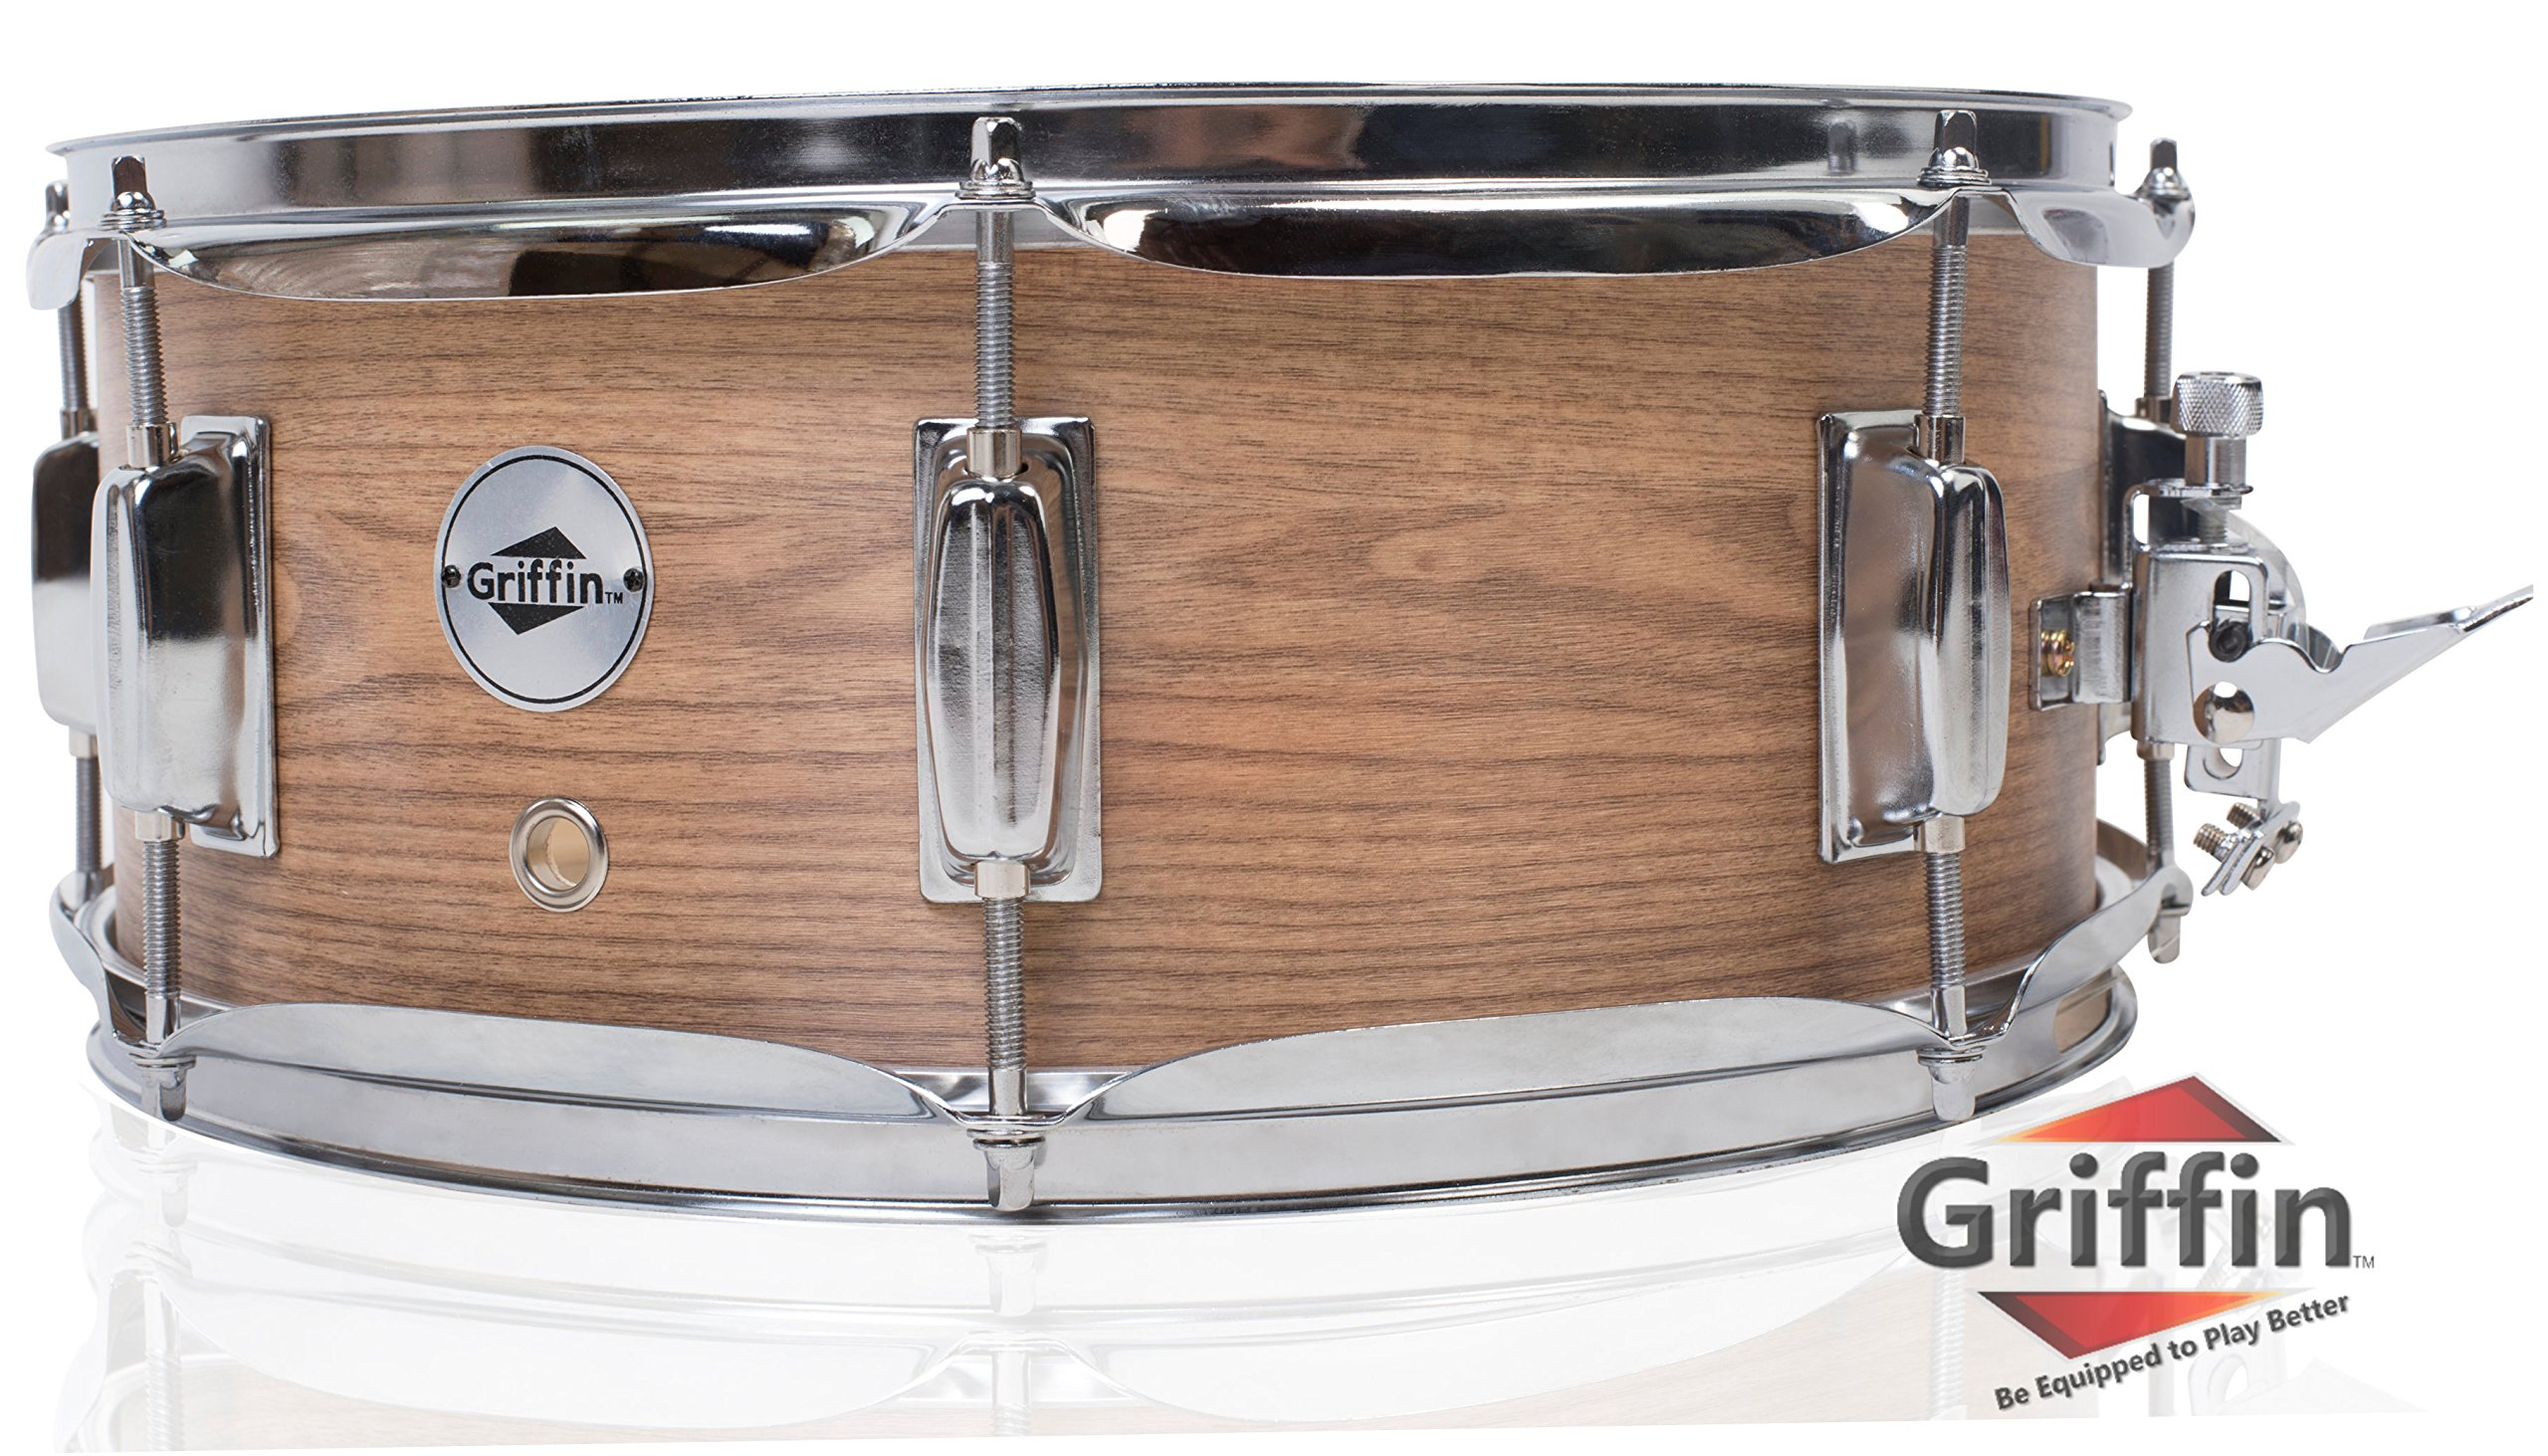 Oak Wood Snare Drum by Griffin | PVC on Poplar Wood Shell 14'' x 5.5'' | Percussion Musical Instrument with Drummers Key for Students & Professionals|8 Tuning Lugs & Deluxe Snare Strainer